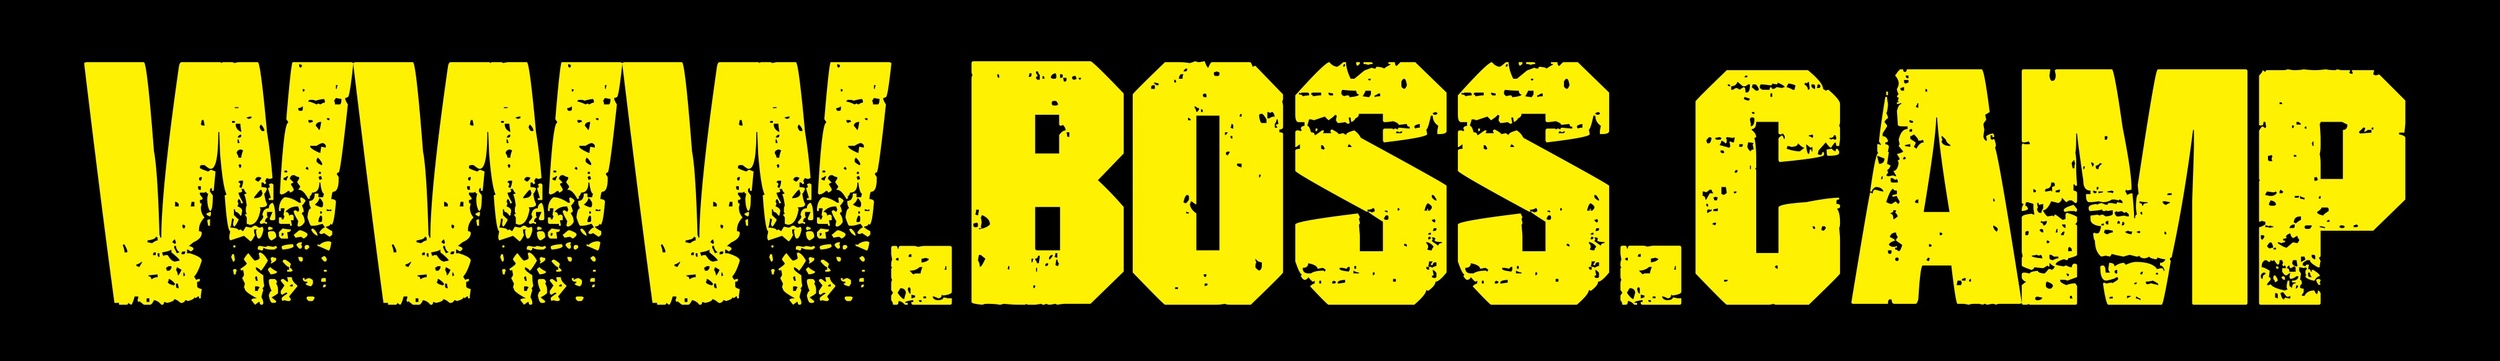 If you're looking for a job in management find out how to make work work at www.boss.camp Jpeg